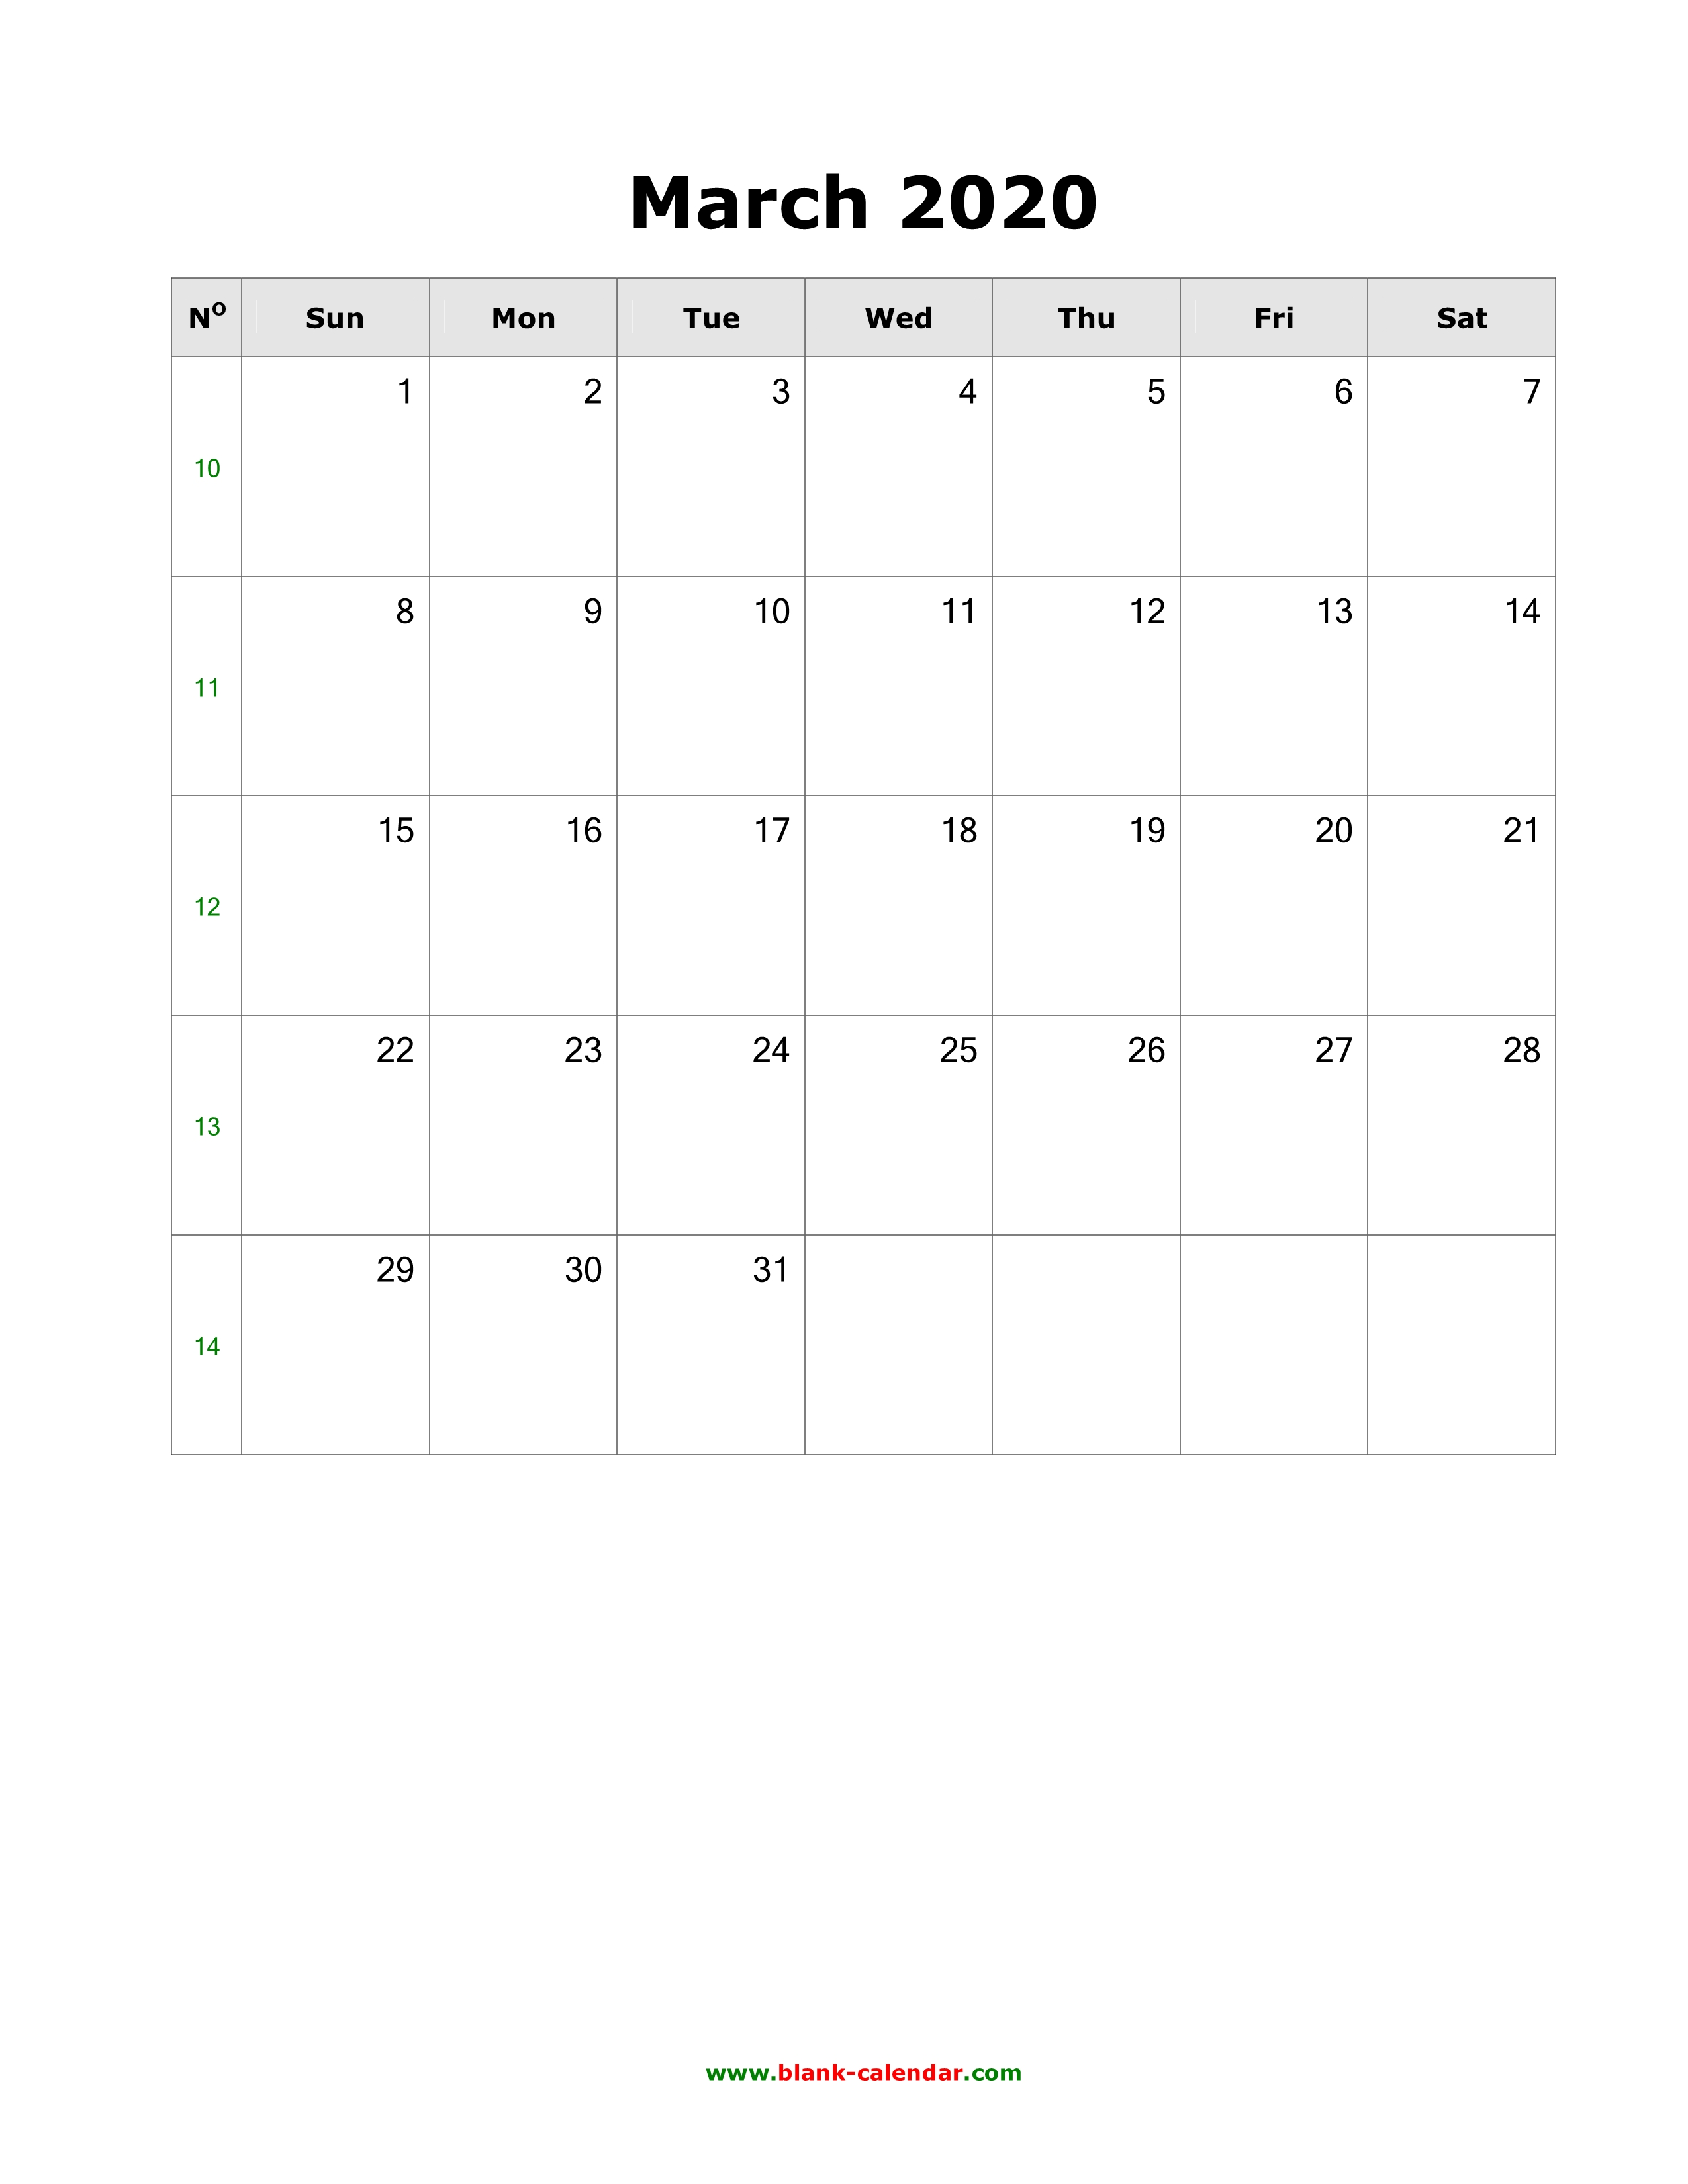 Download March 2020 Blank Calendar with US Holidays (vertical)